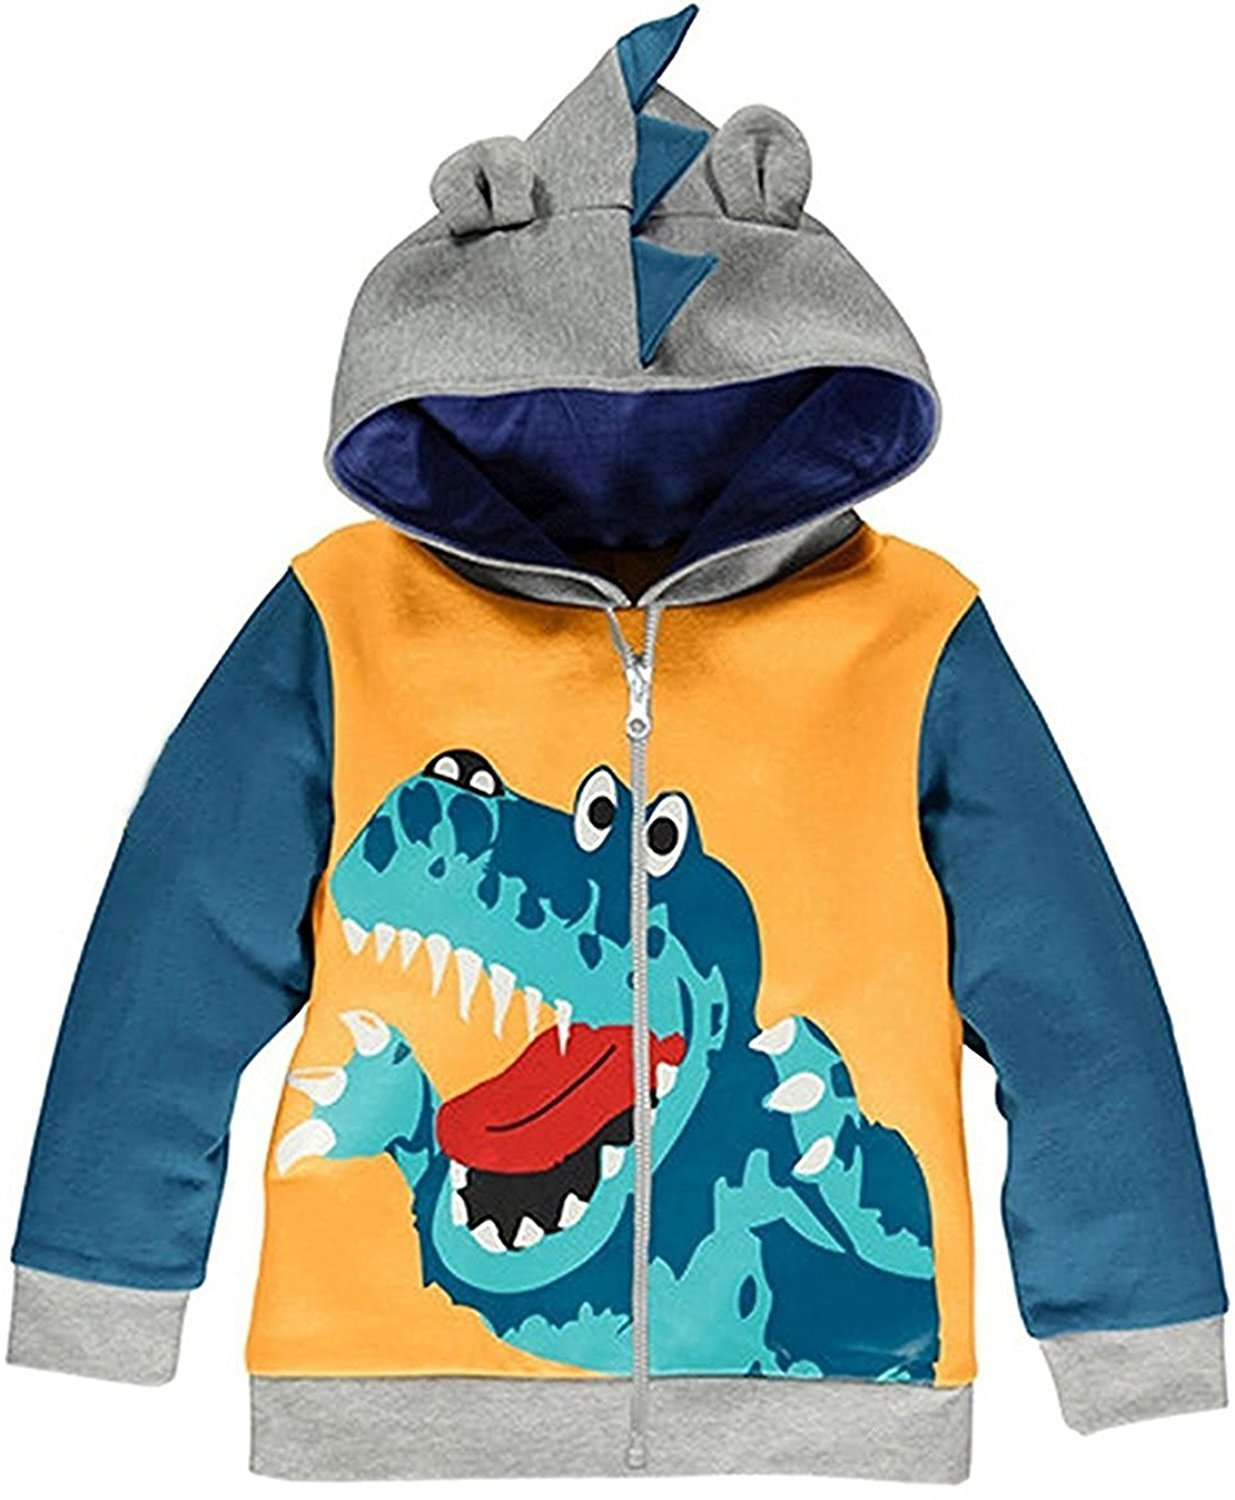 Little Boys Hoodie Zip Up Jacket Baby Dinosaur Coat Toddler Hood Outerwear